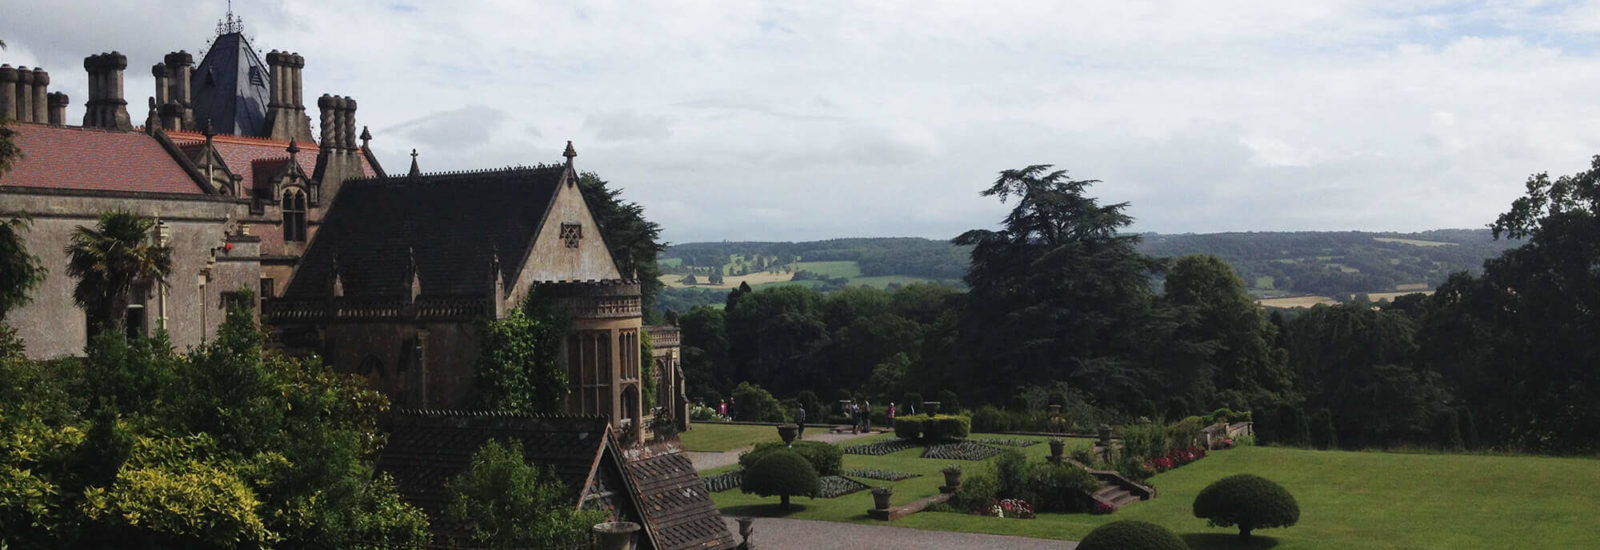 Image of National Trust Tyntesfield